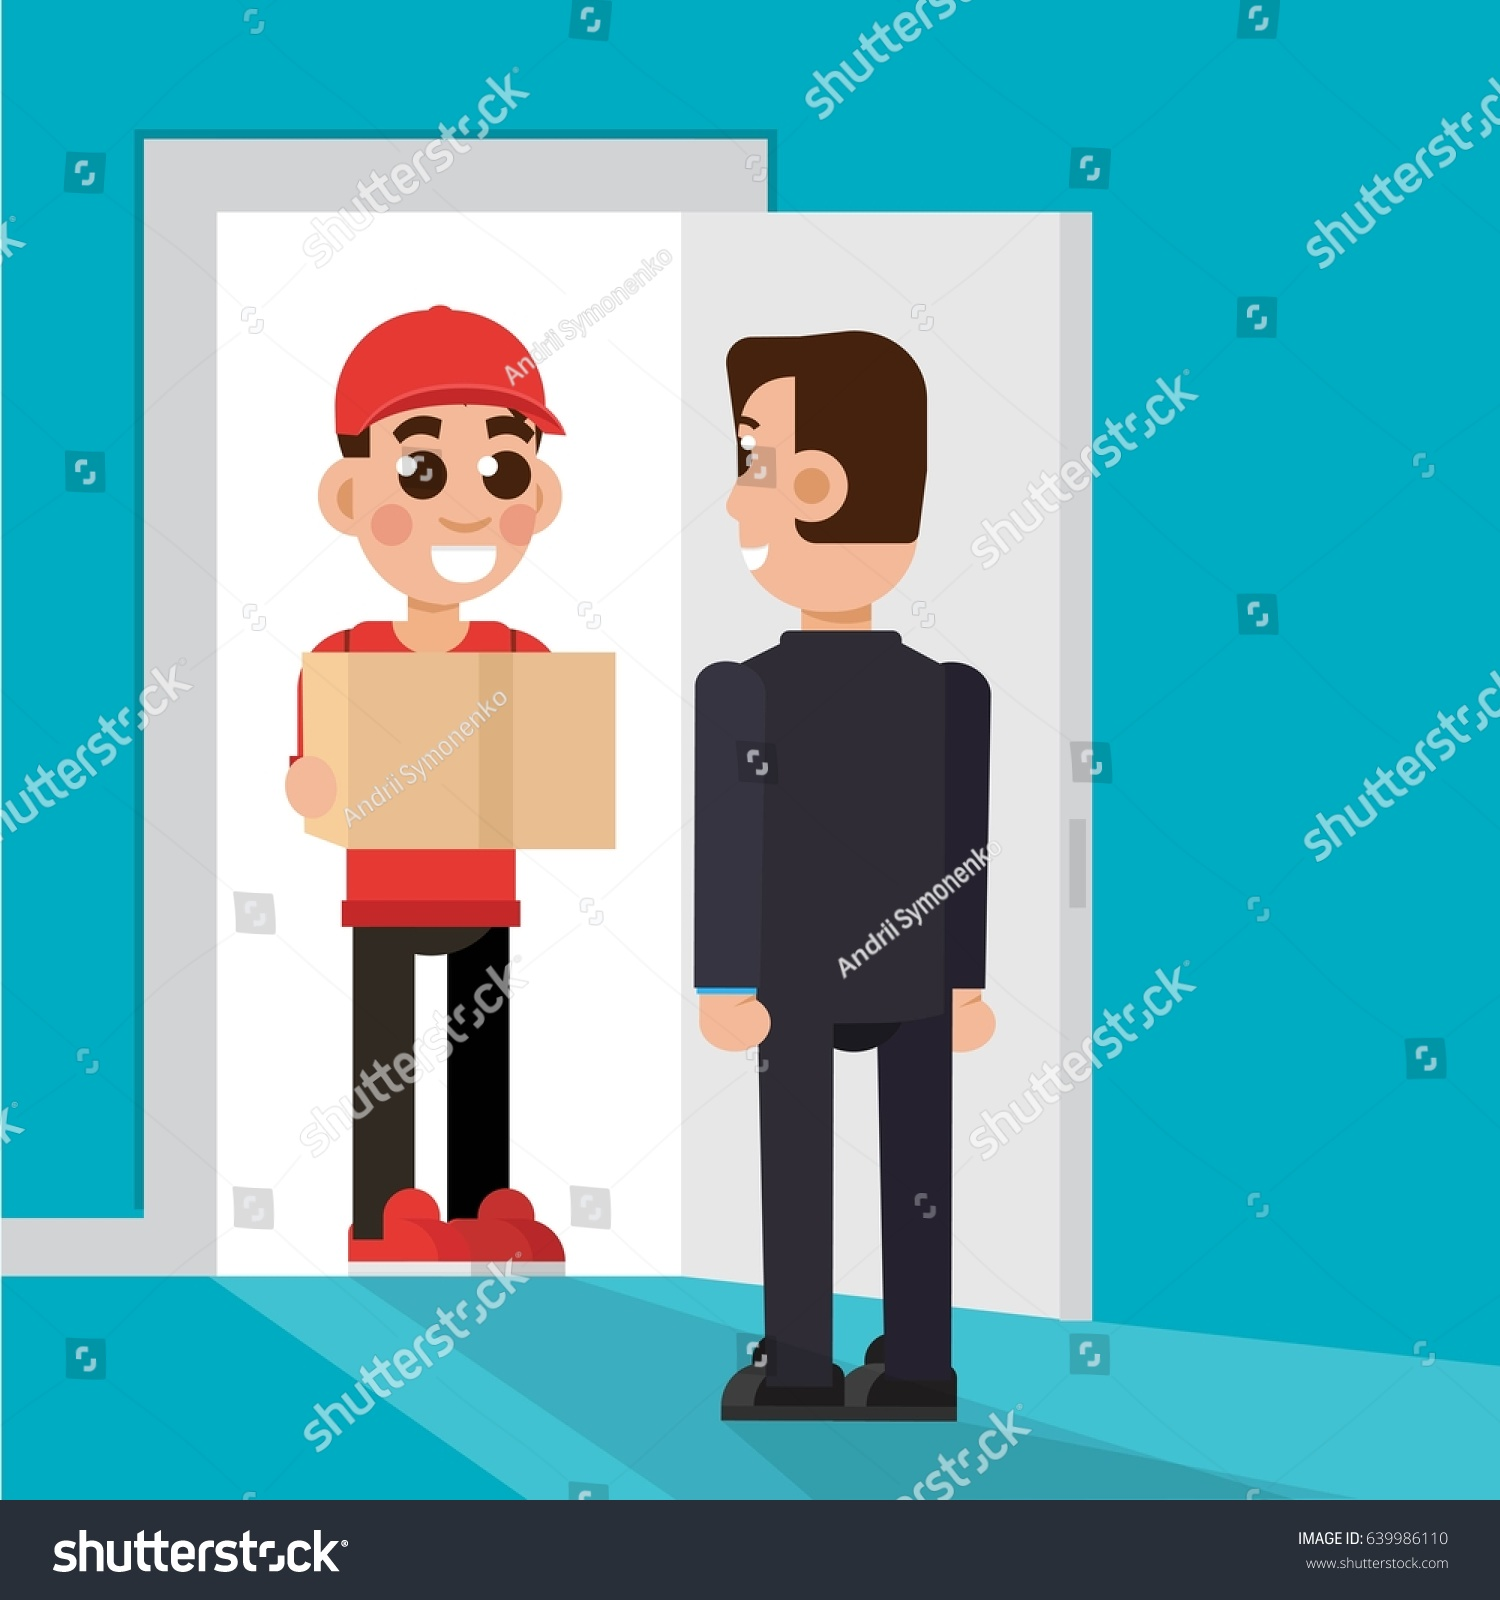 Delivery to the door. Delivery man character. Vectror illustration.  sc 1 st  Shutterstock & Delivery Door Delivery Man Character Vectror Stock Vector ... pezcame.com